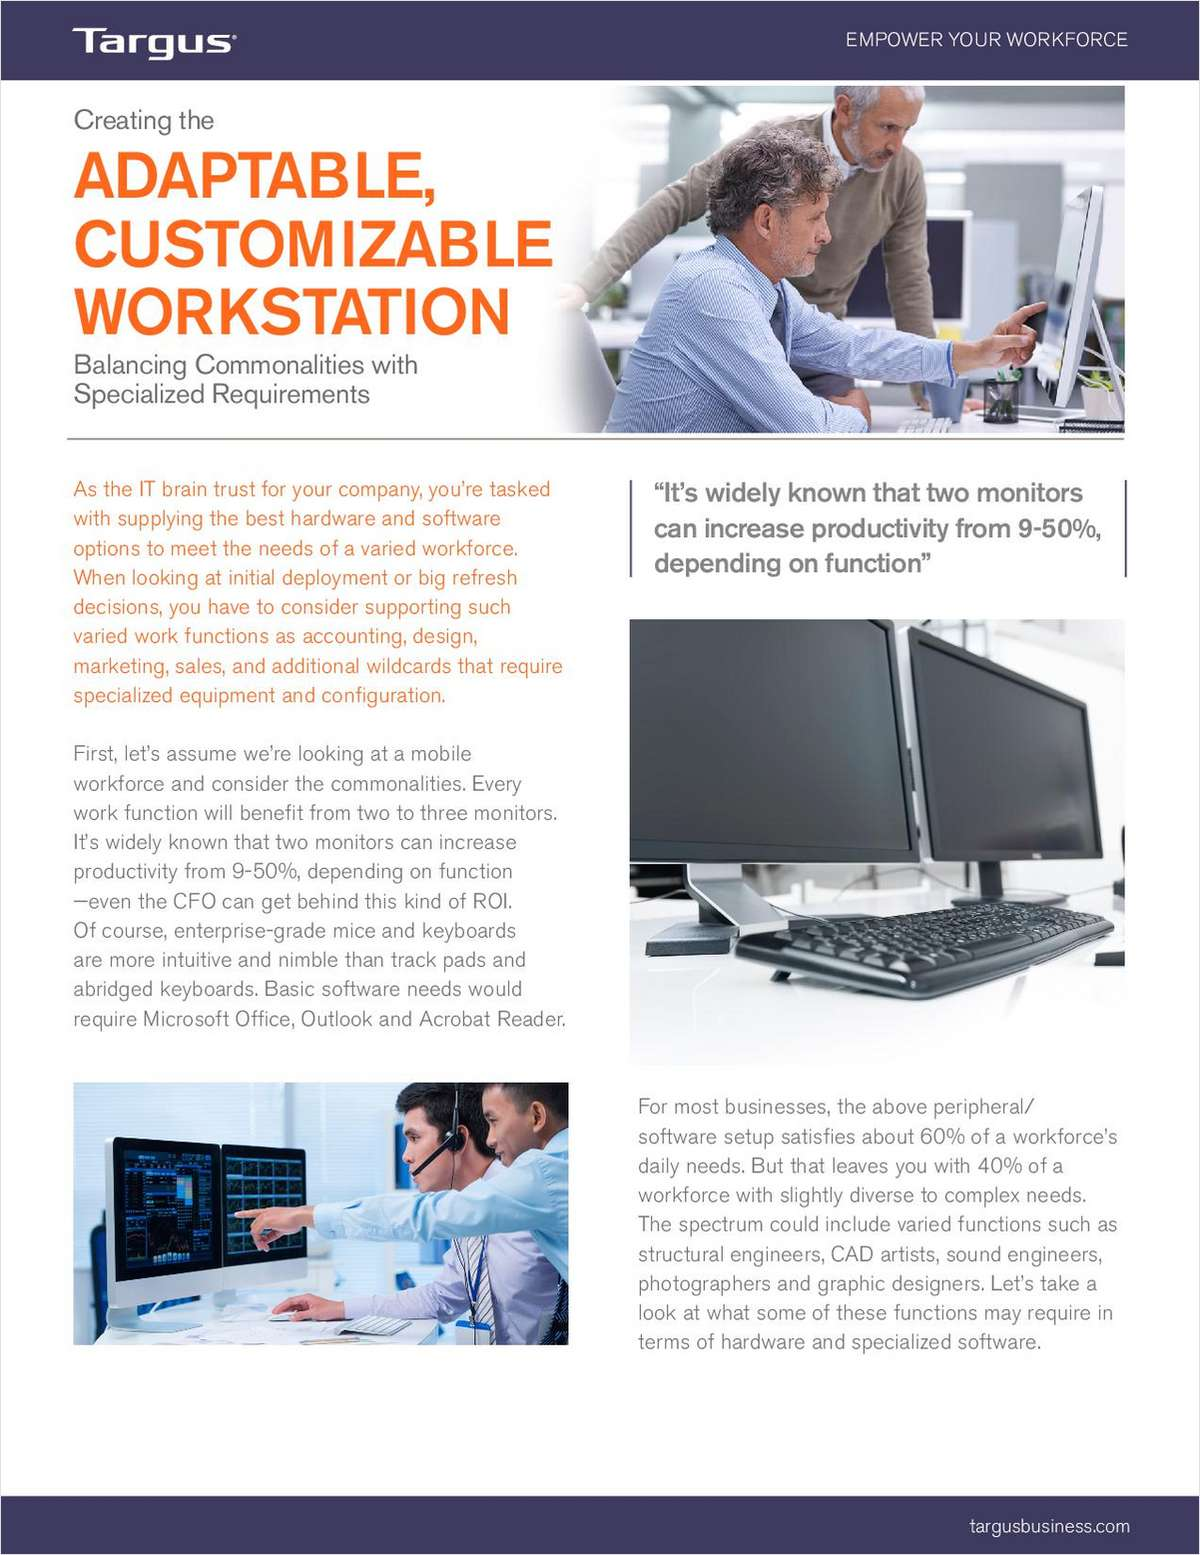 Empower Your Workforce with Adaptable, Customizable, Workstations